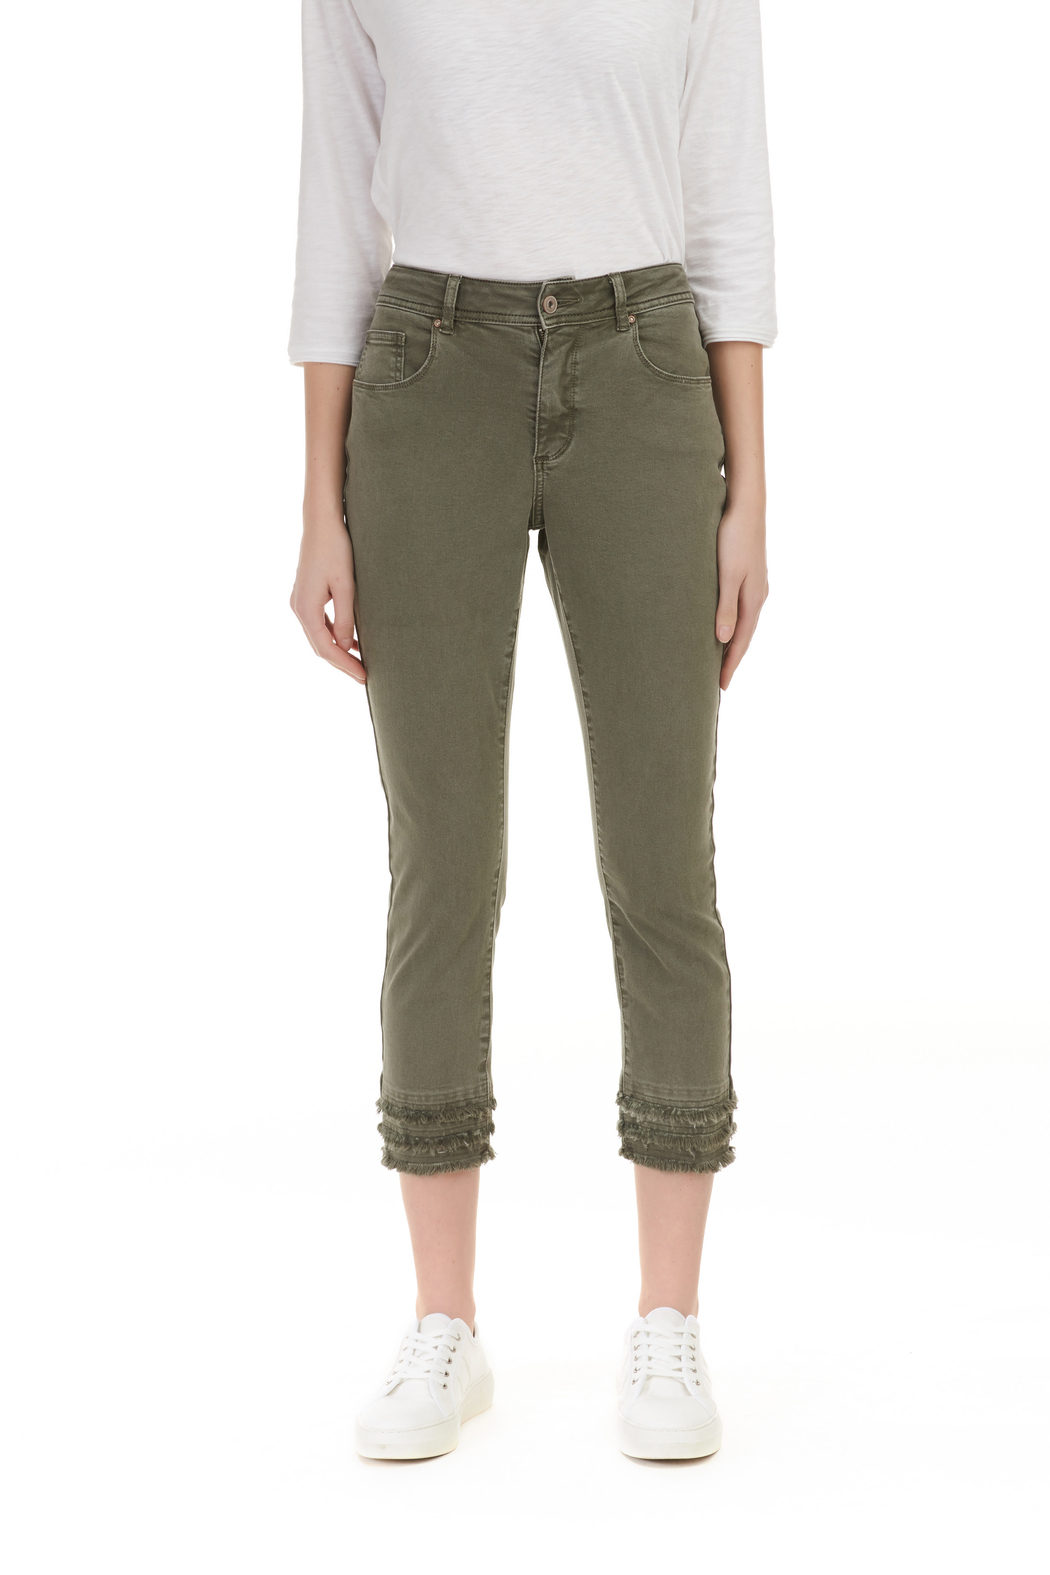 Charlie B. Twill Jeans with layered Fringe hem - Front Cropped Image